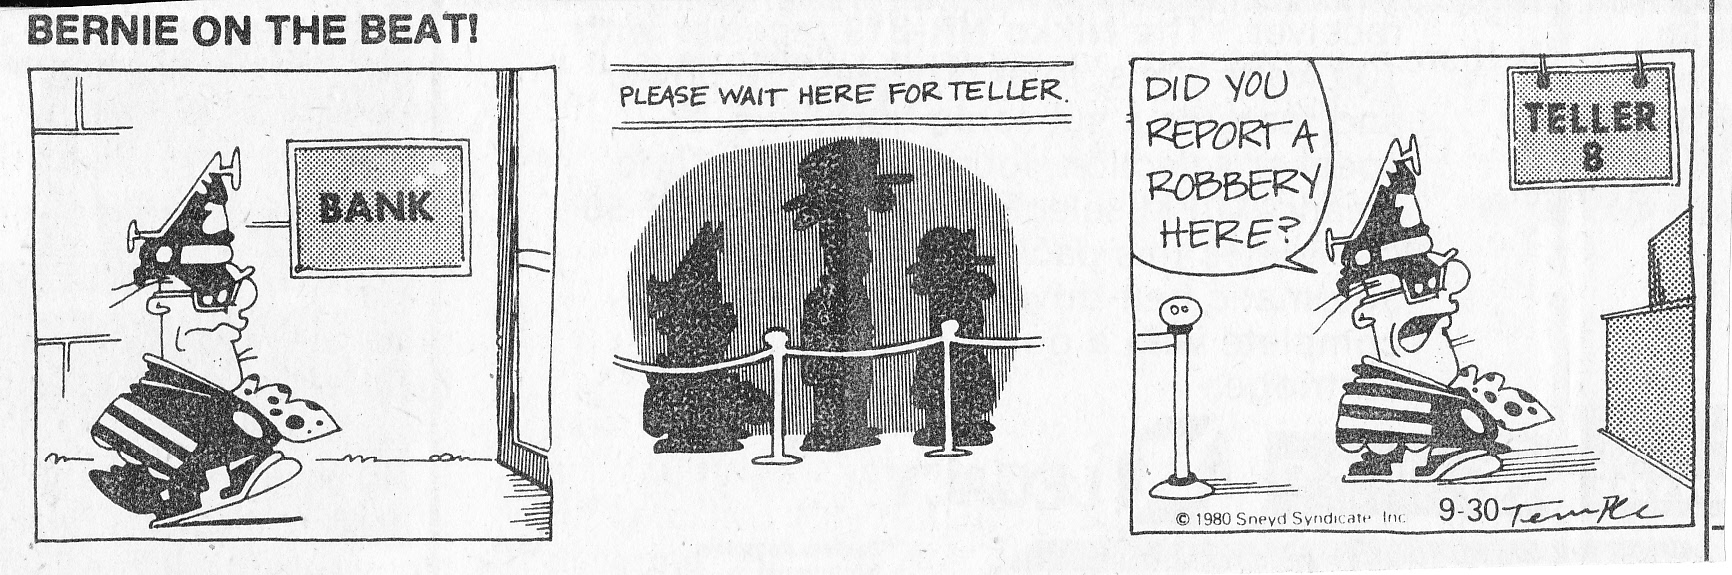 C:\Users\Robert\Documents\CARTOONING ILLUSTRATION ANIMATION\IMAGE CARTOON\IMAGE CARTOON B\BERNIE ON THE BEAT Edmonton Journal 30 Sept. 1980.jpg